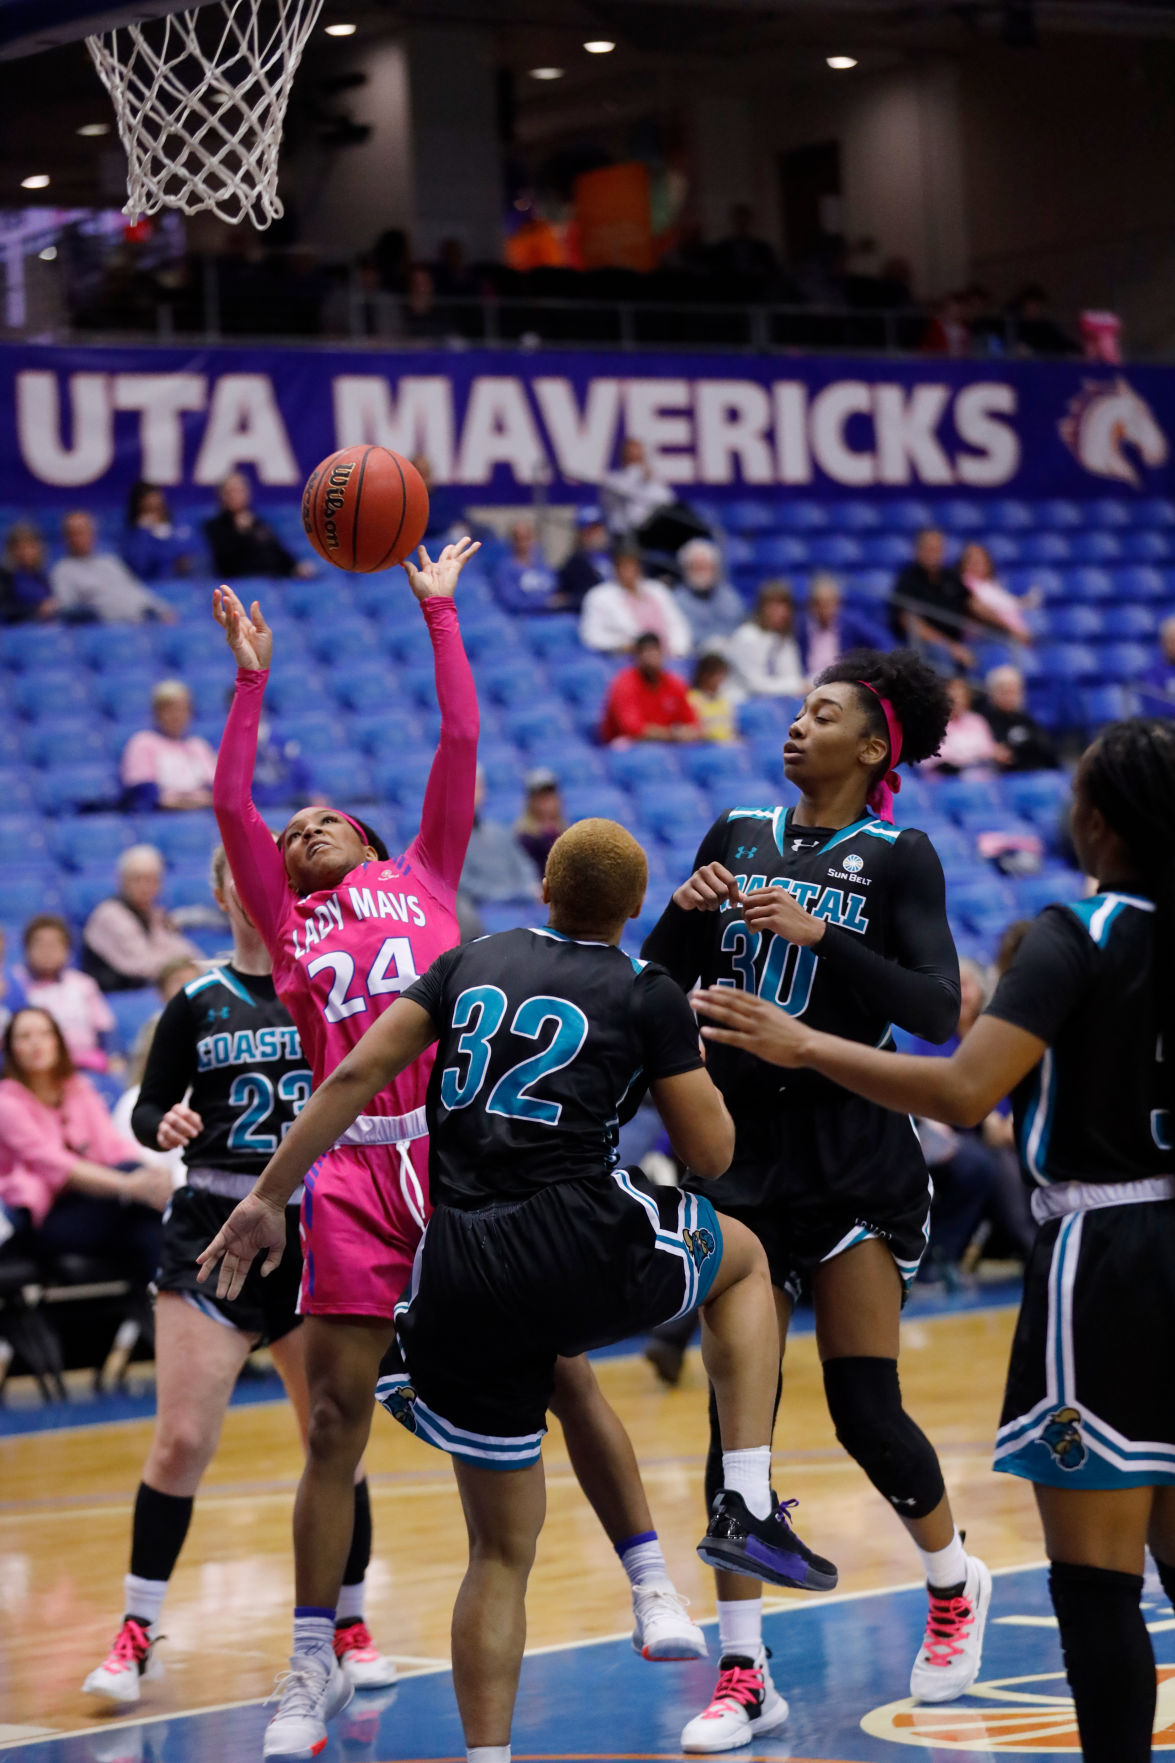 Photos: Lady Mavericks fall to Coastal Carolina University on UTA Beats Cancer Day